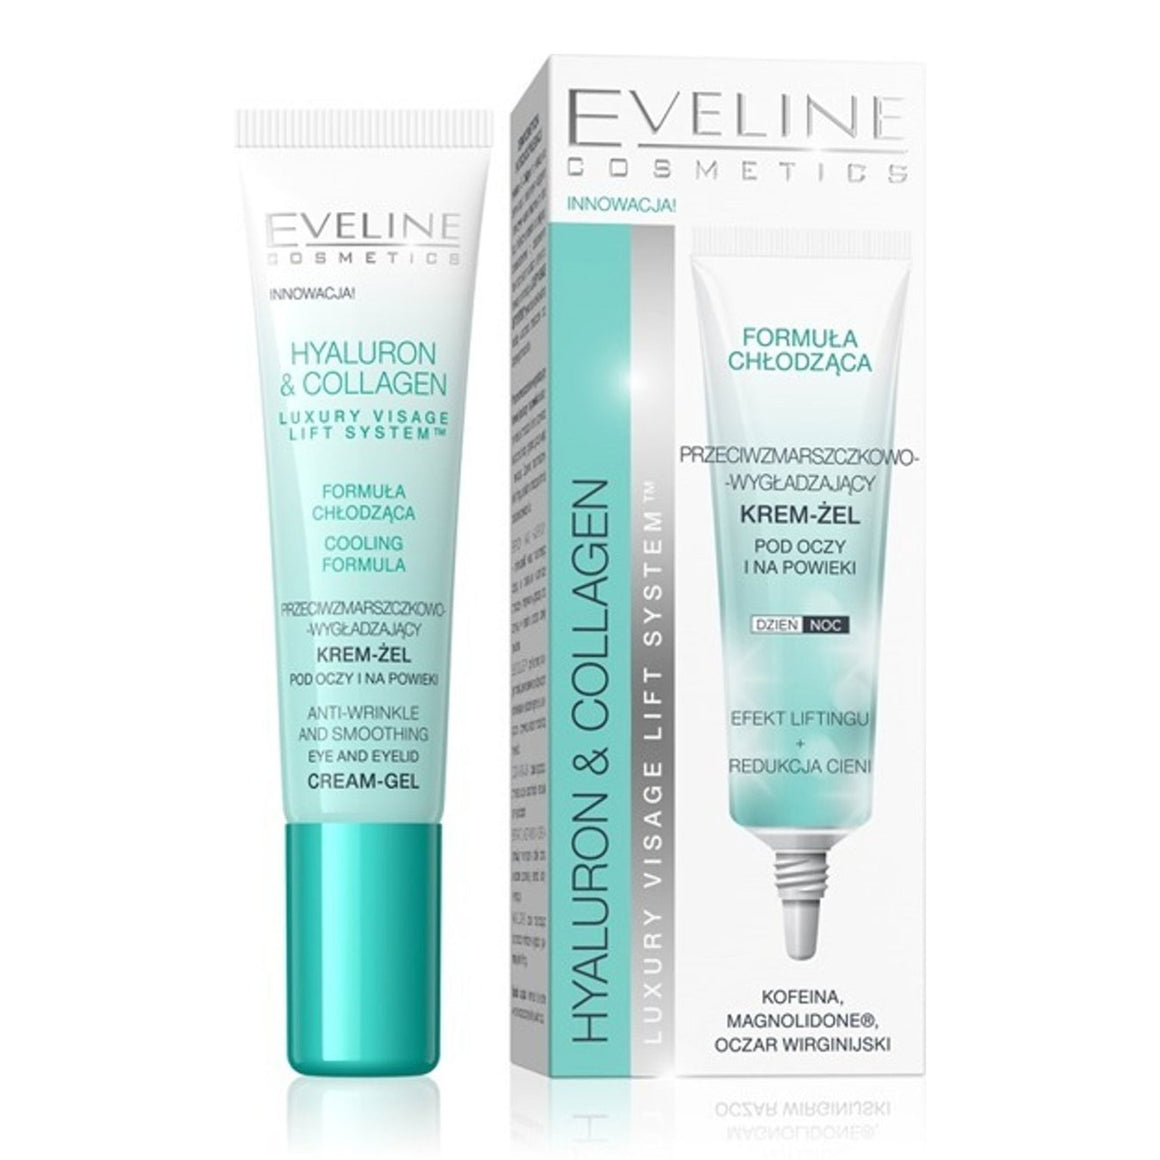 EVELINE Hyaluron & Collagen Anti-Wrinkle and Smoothing Eye And Eyelid Cream-Gel 15ml